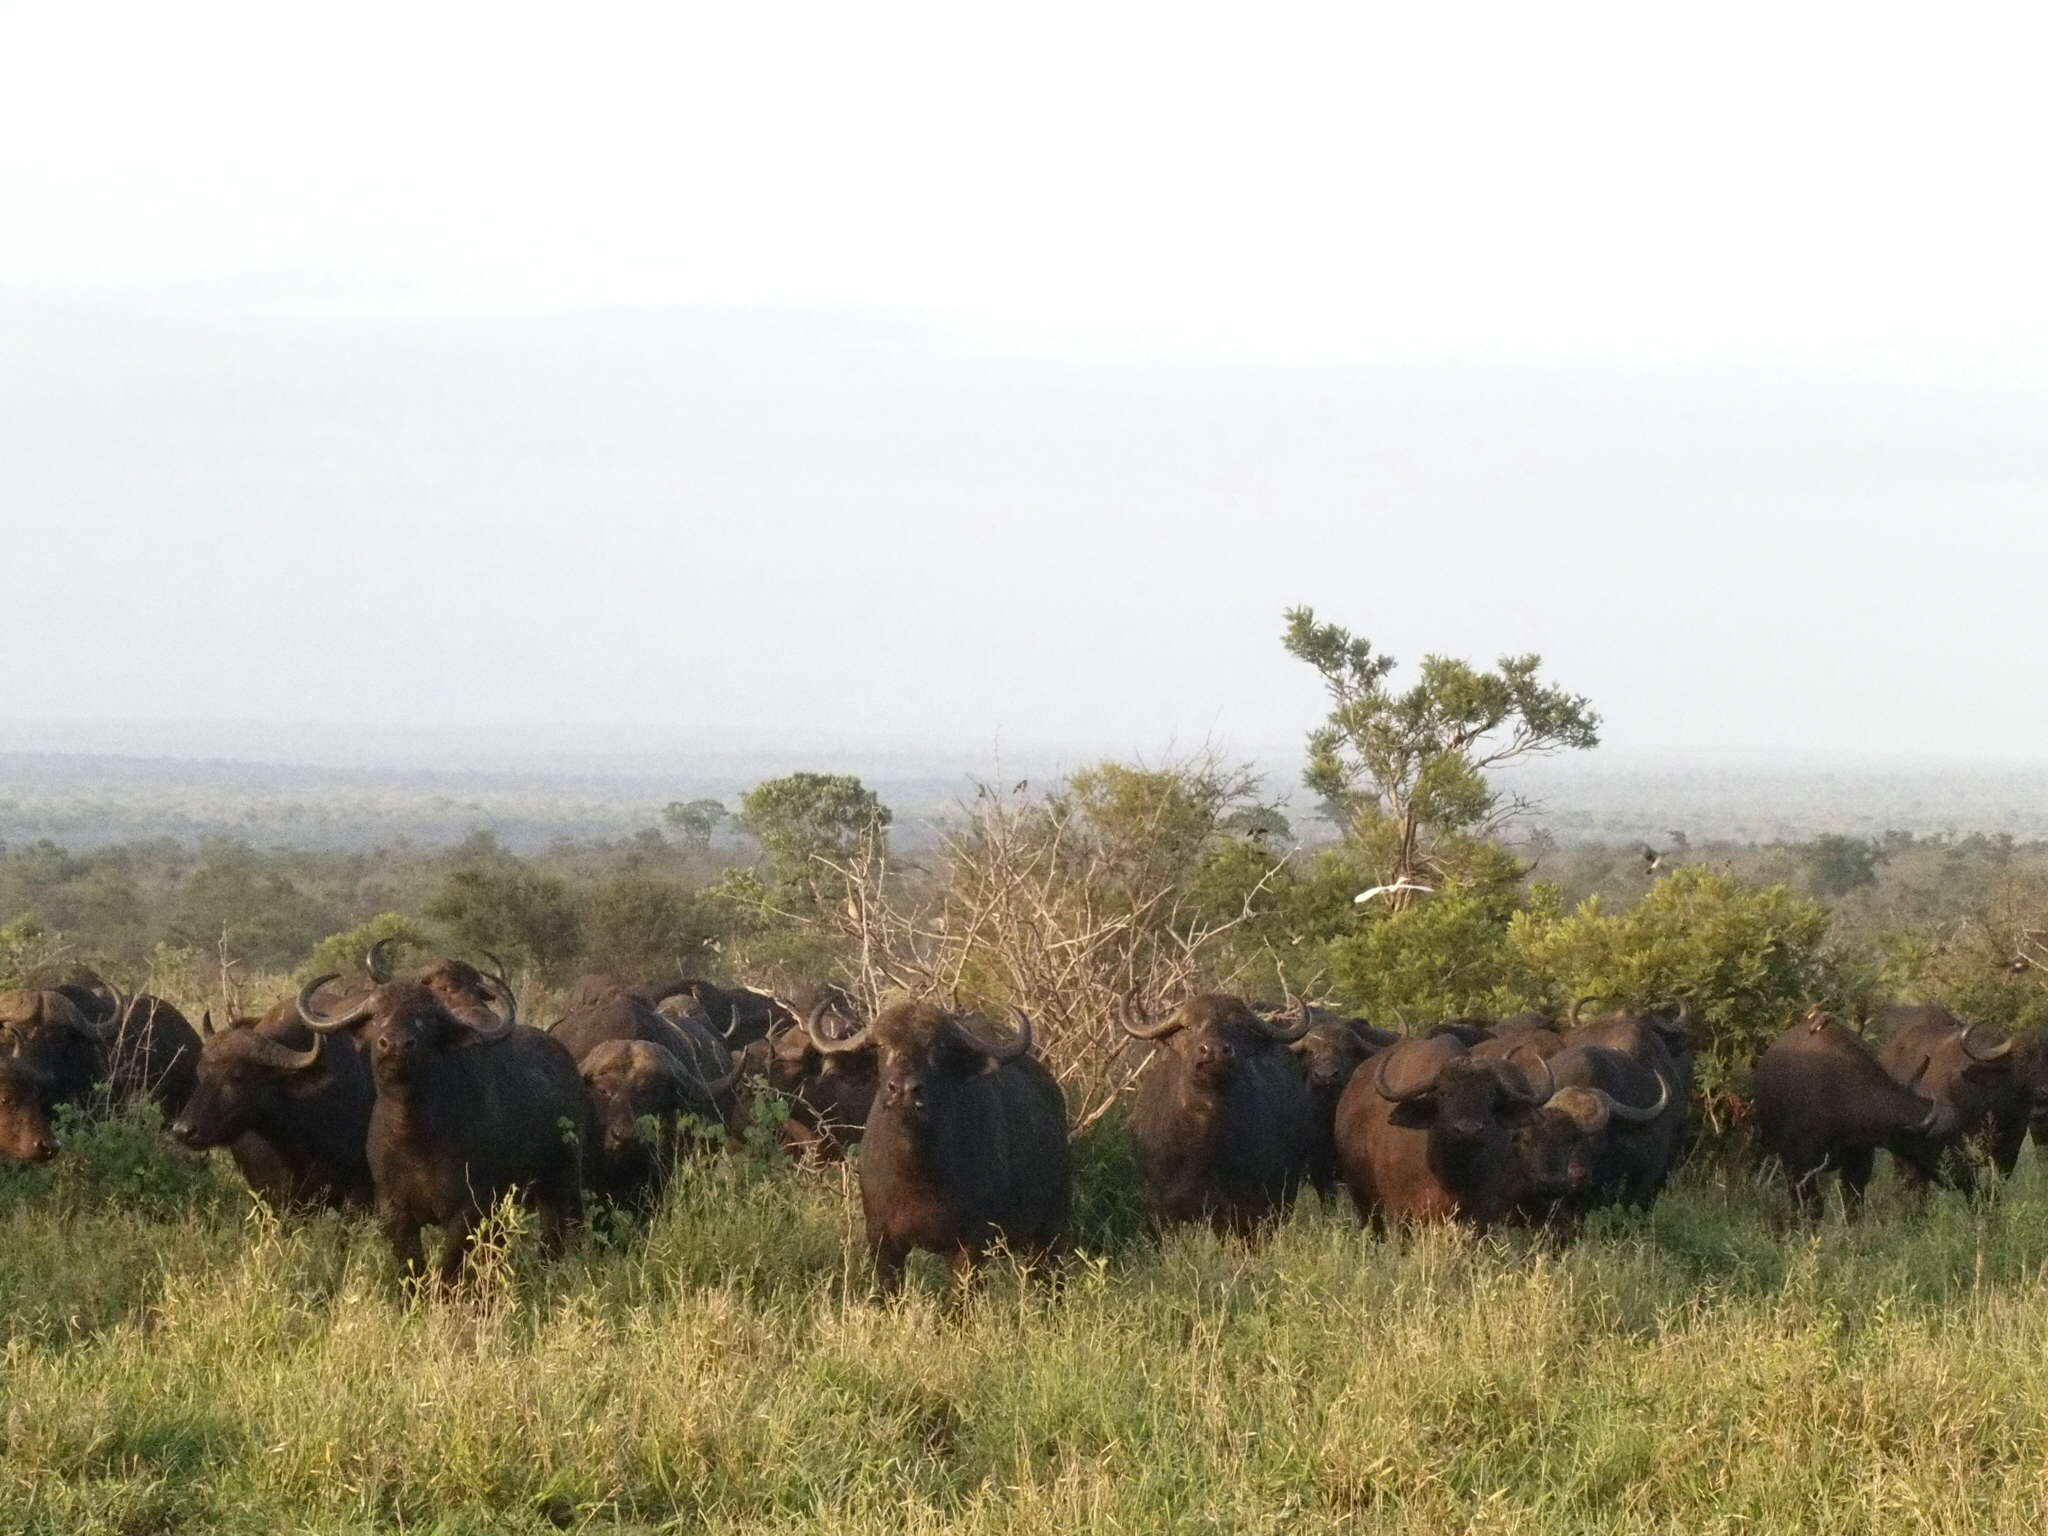 On a morning walk, led by two guides, our herd of humans came face to face with a herd of buffalo